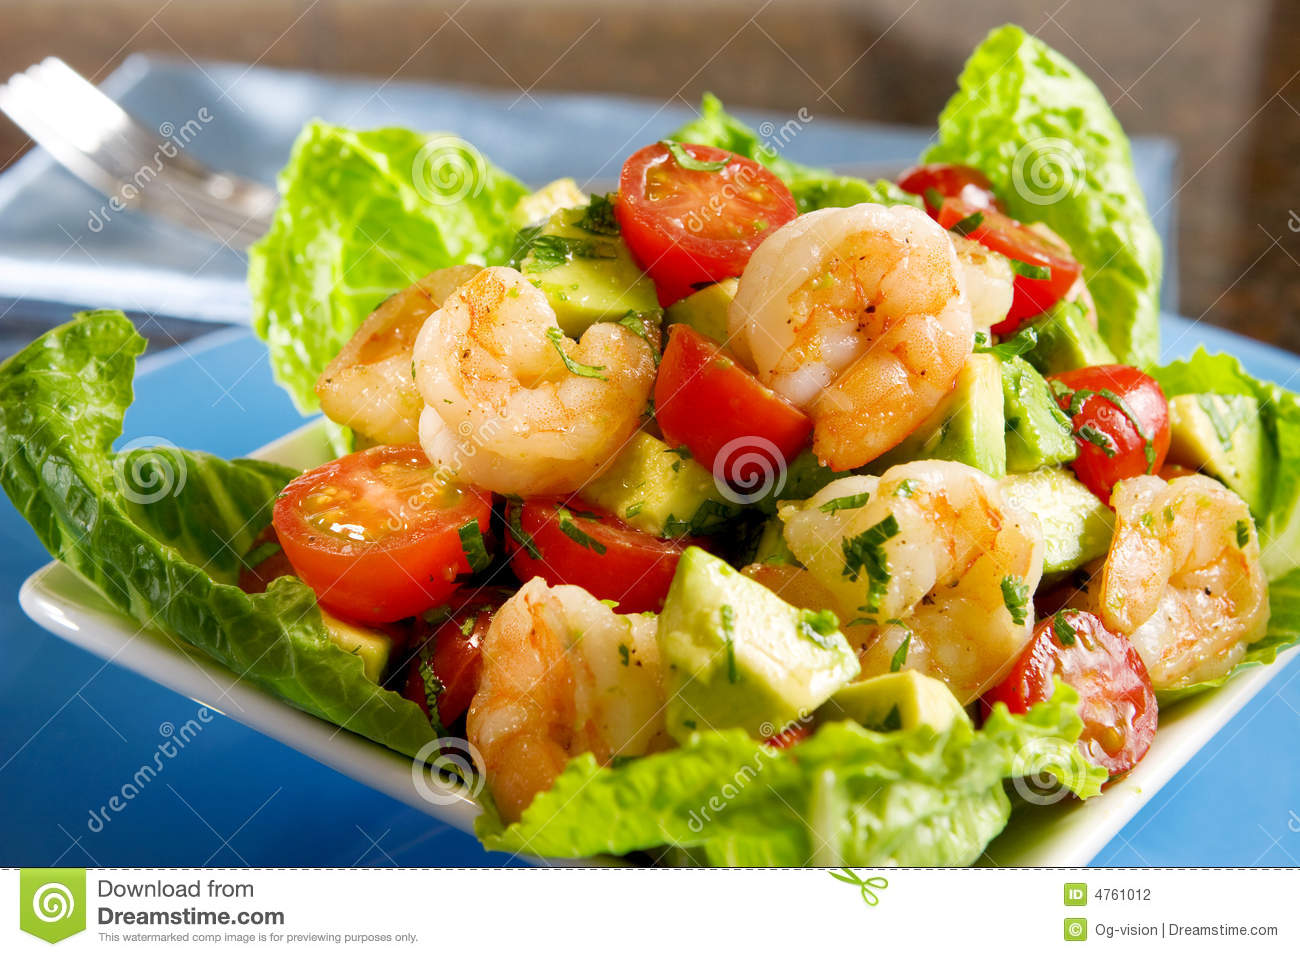 Avocado Shrimp Salad Stock Photography - Image: 4761012